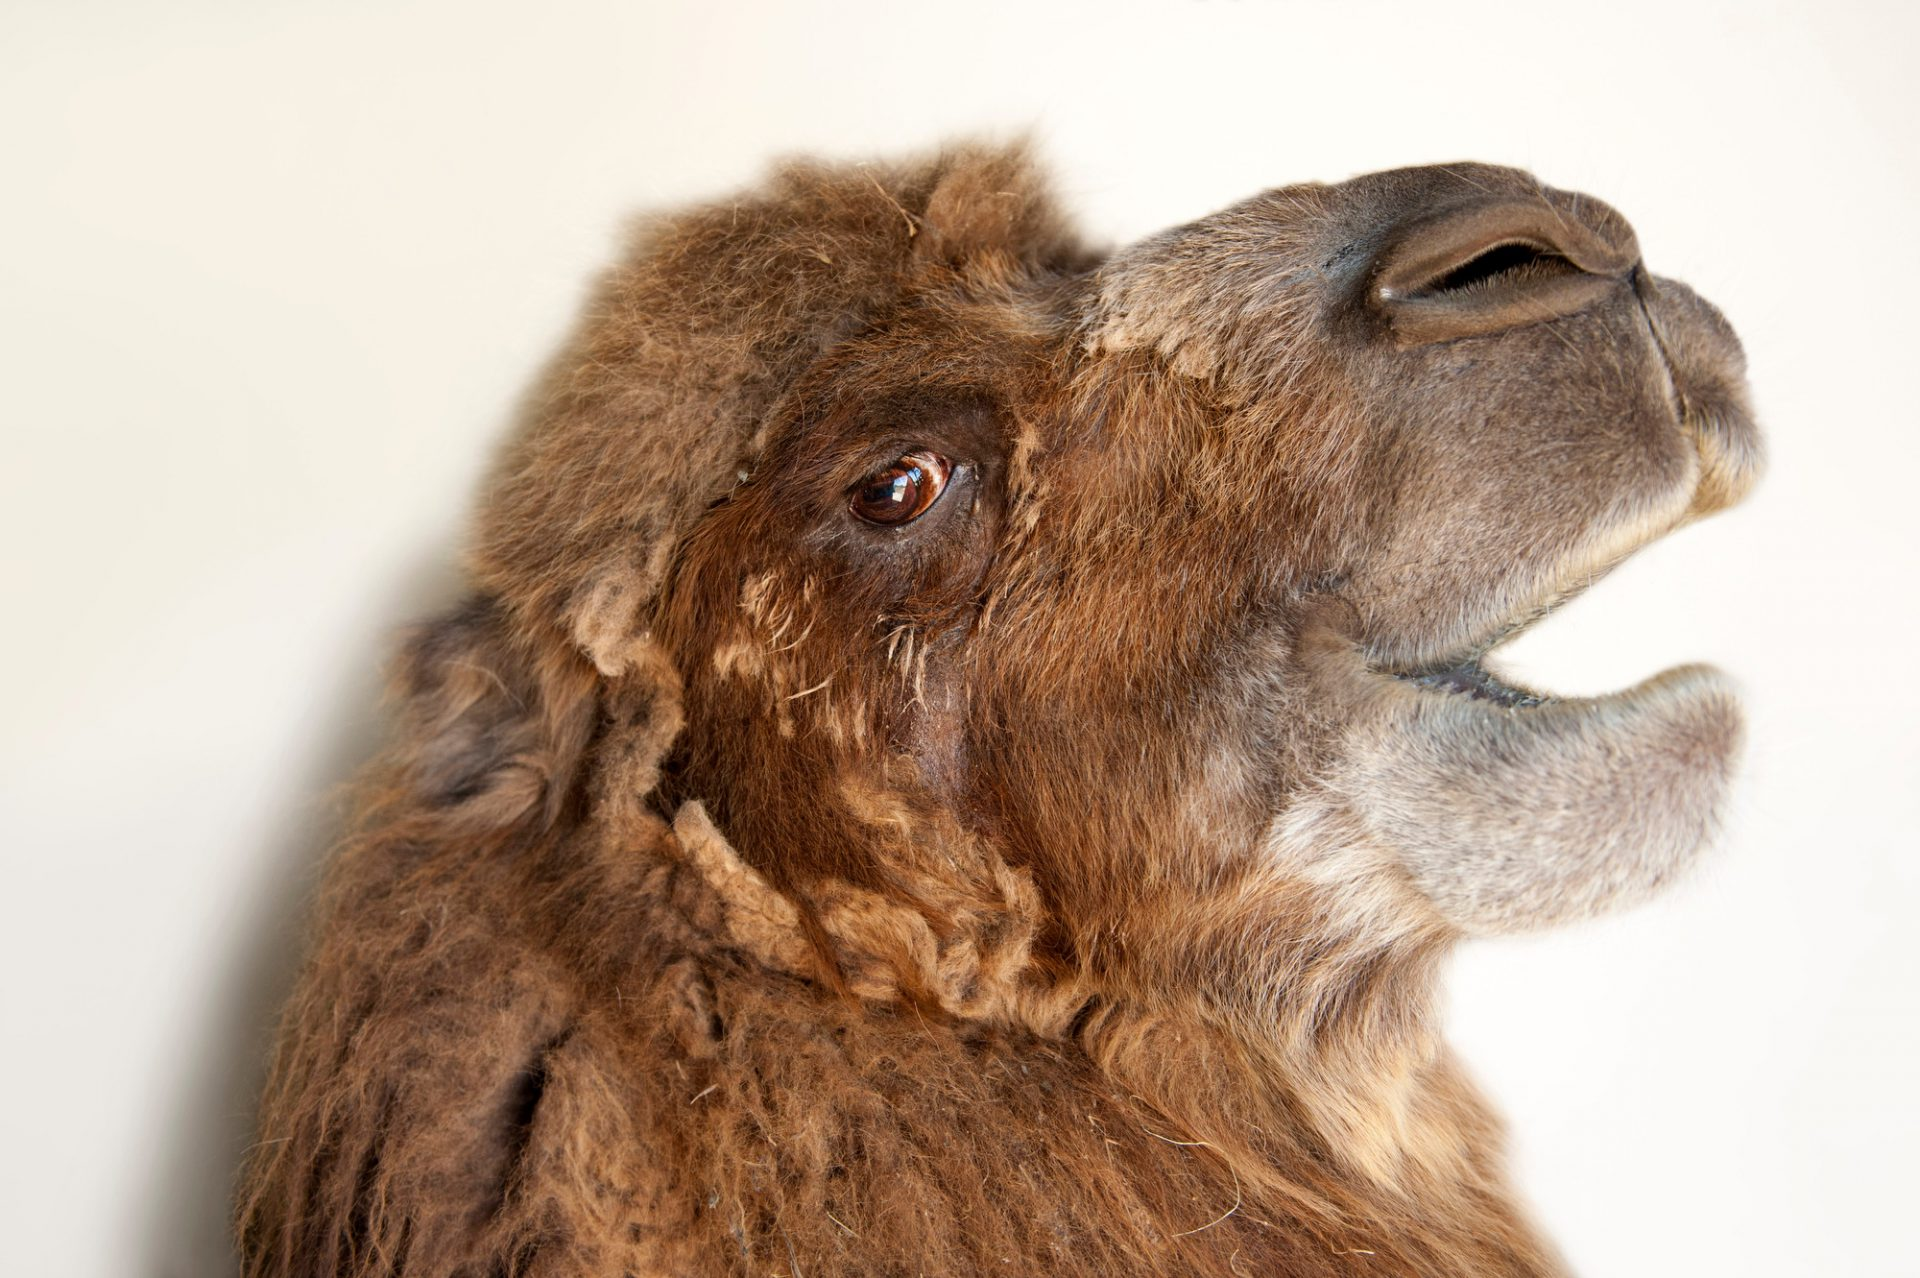 A critically endangered (IUCN) and federally endangered bactrian camel, Camelus bactrianus, at the Lincoln Children's Zoo.